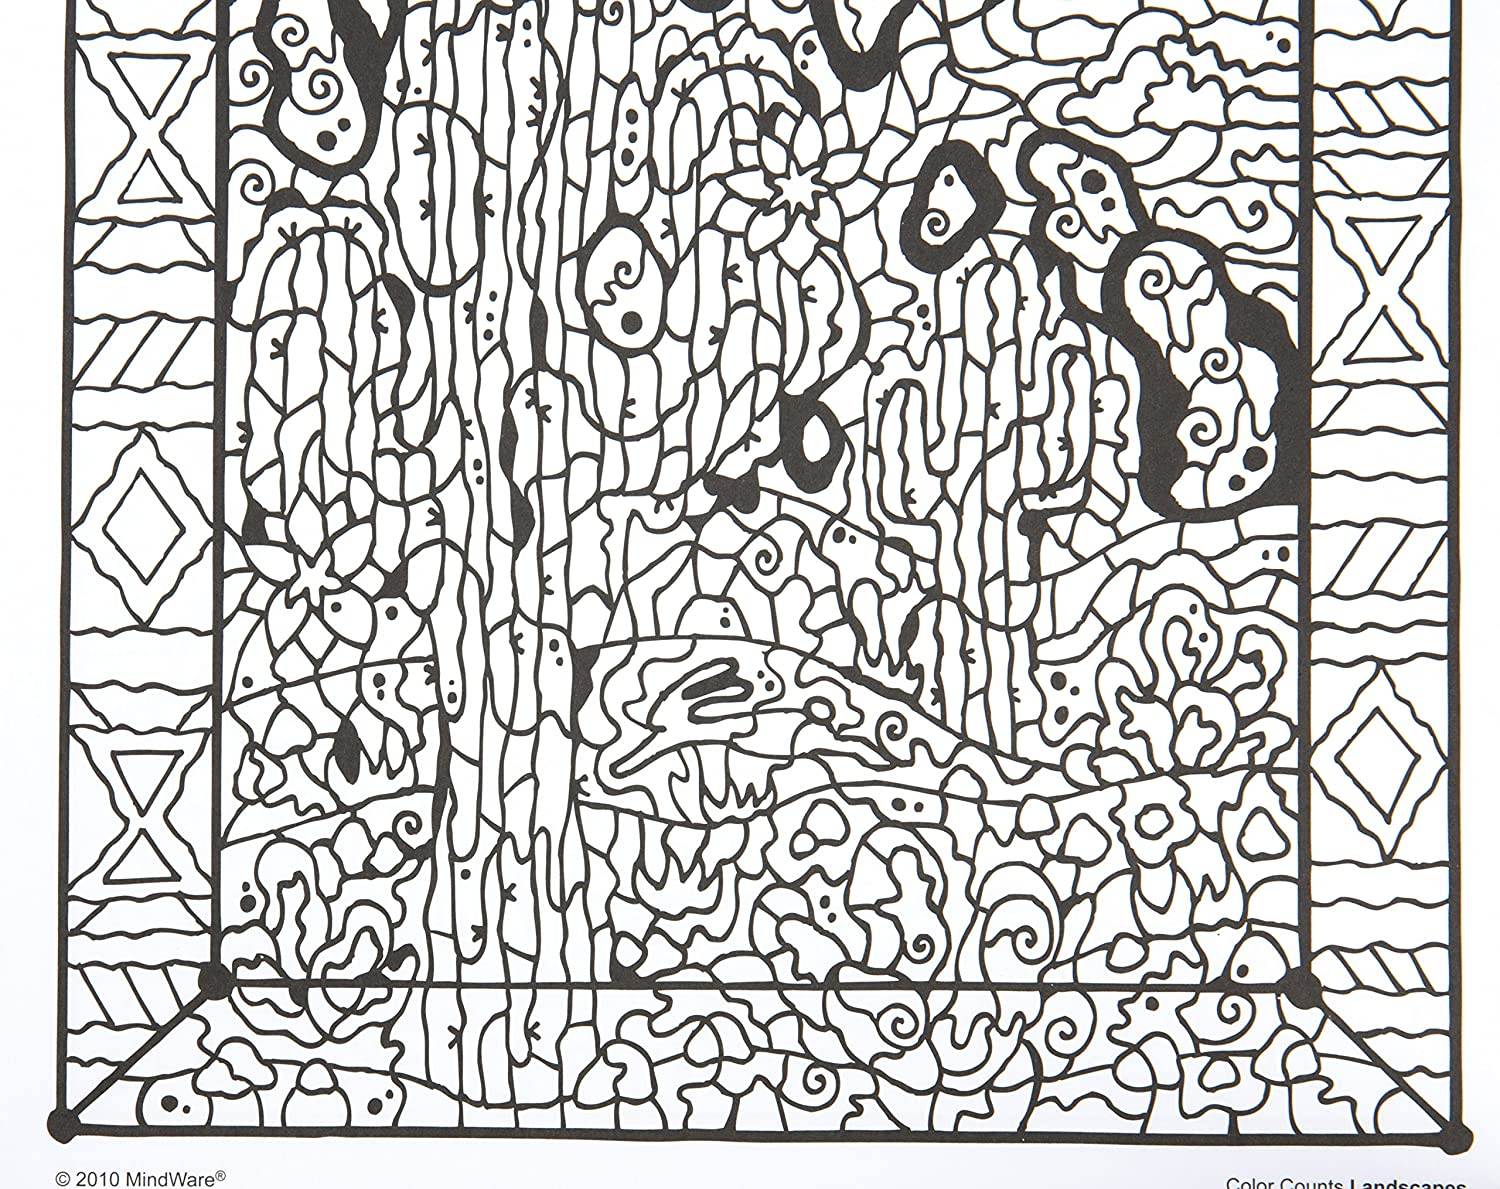 Mindware original coloring books coloring page for Color counts coloring pages